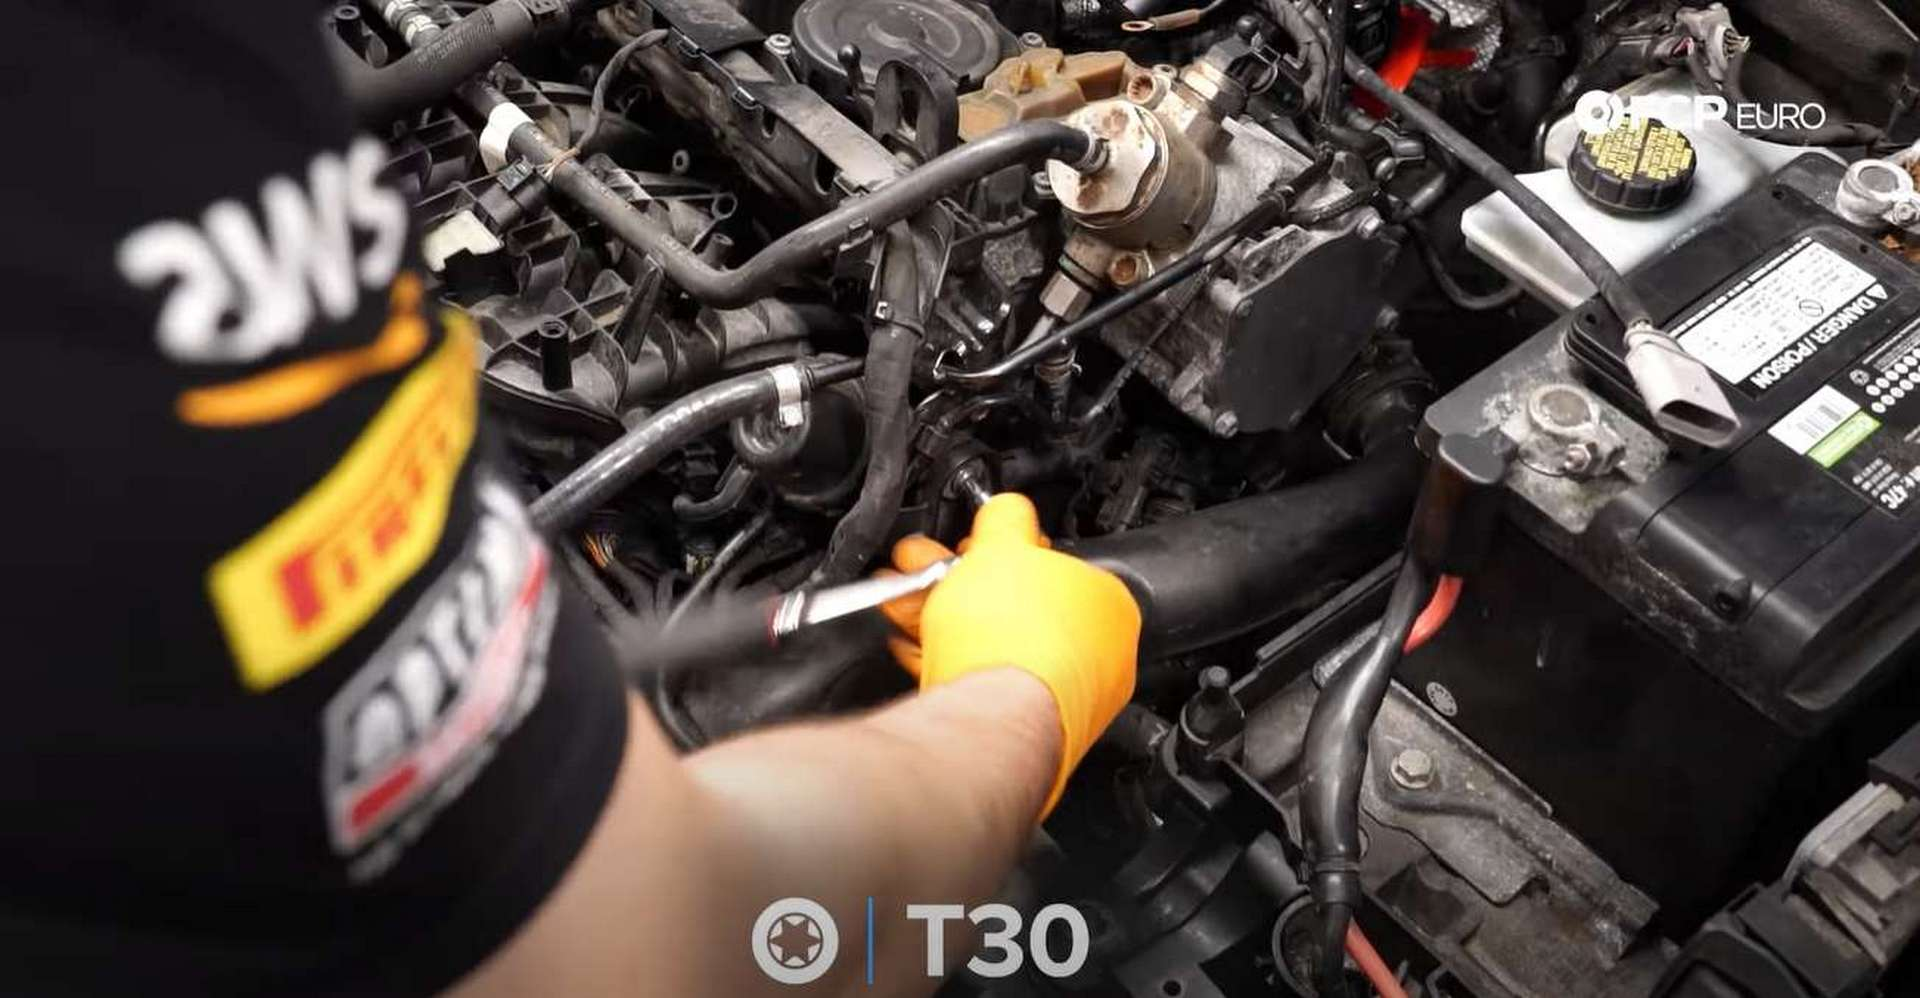 DIY MK7 VW GTI Turbocharger Upgrade securing the charge pipe to the engine